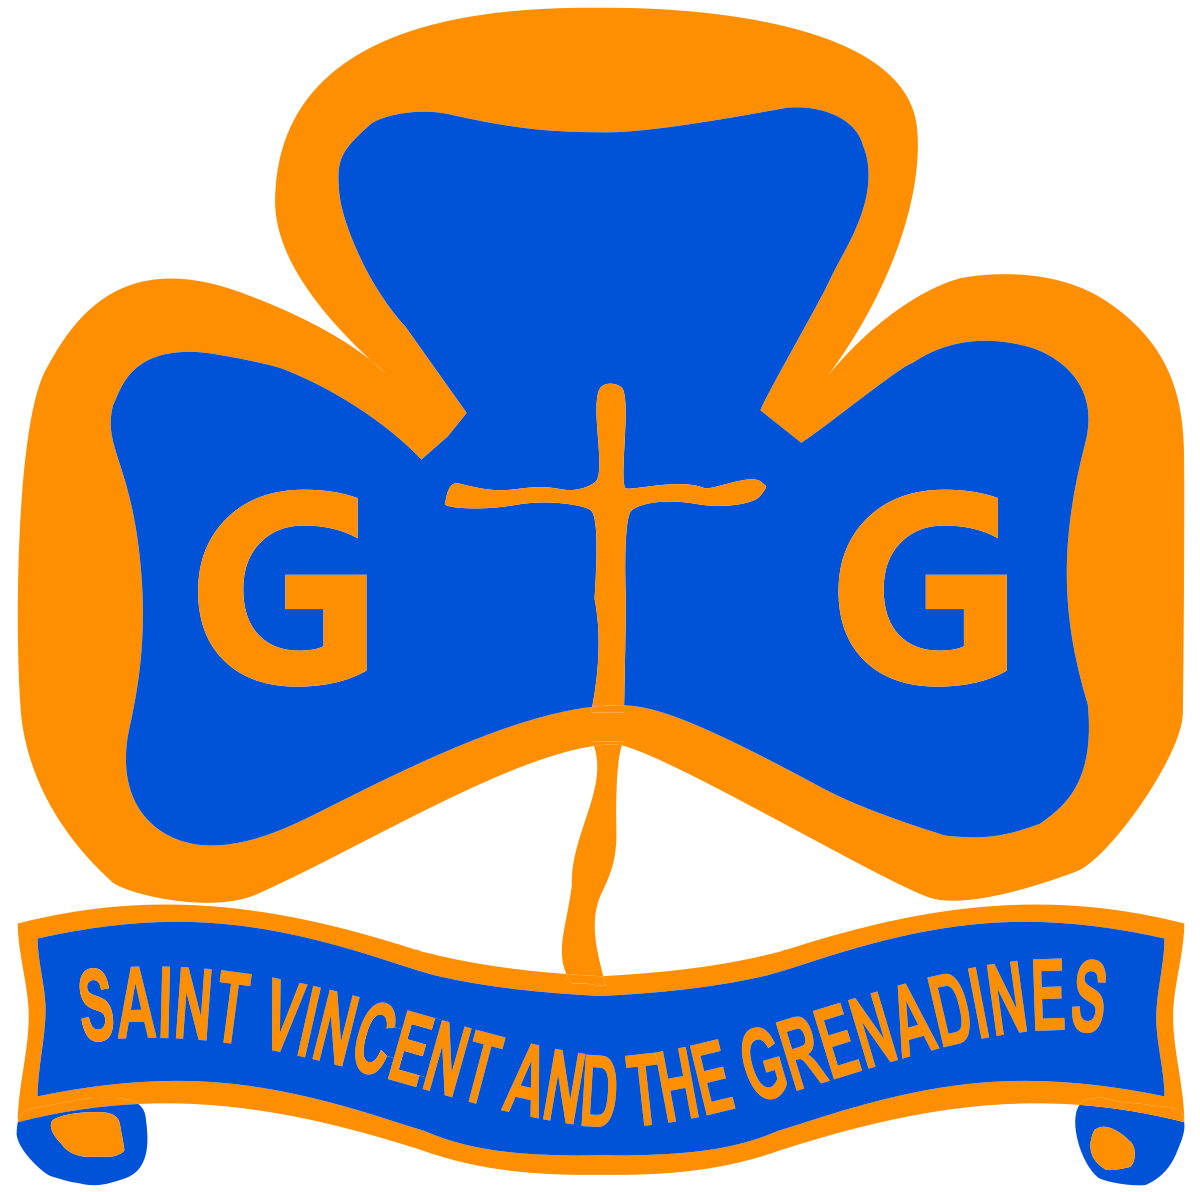 Svg airlines vincent. Girl guides association of